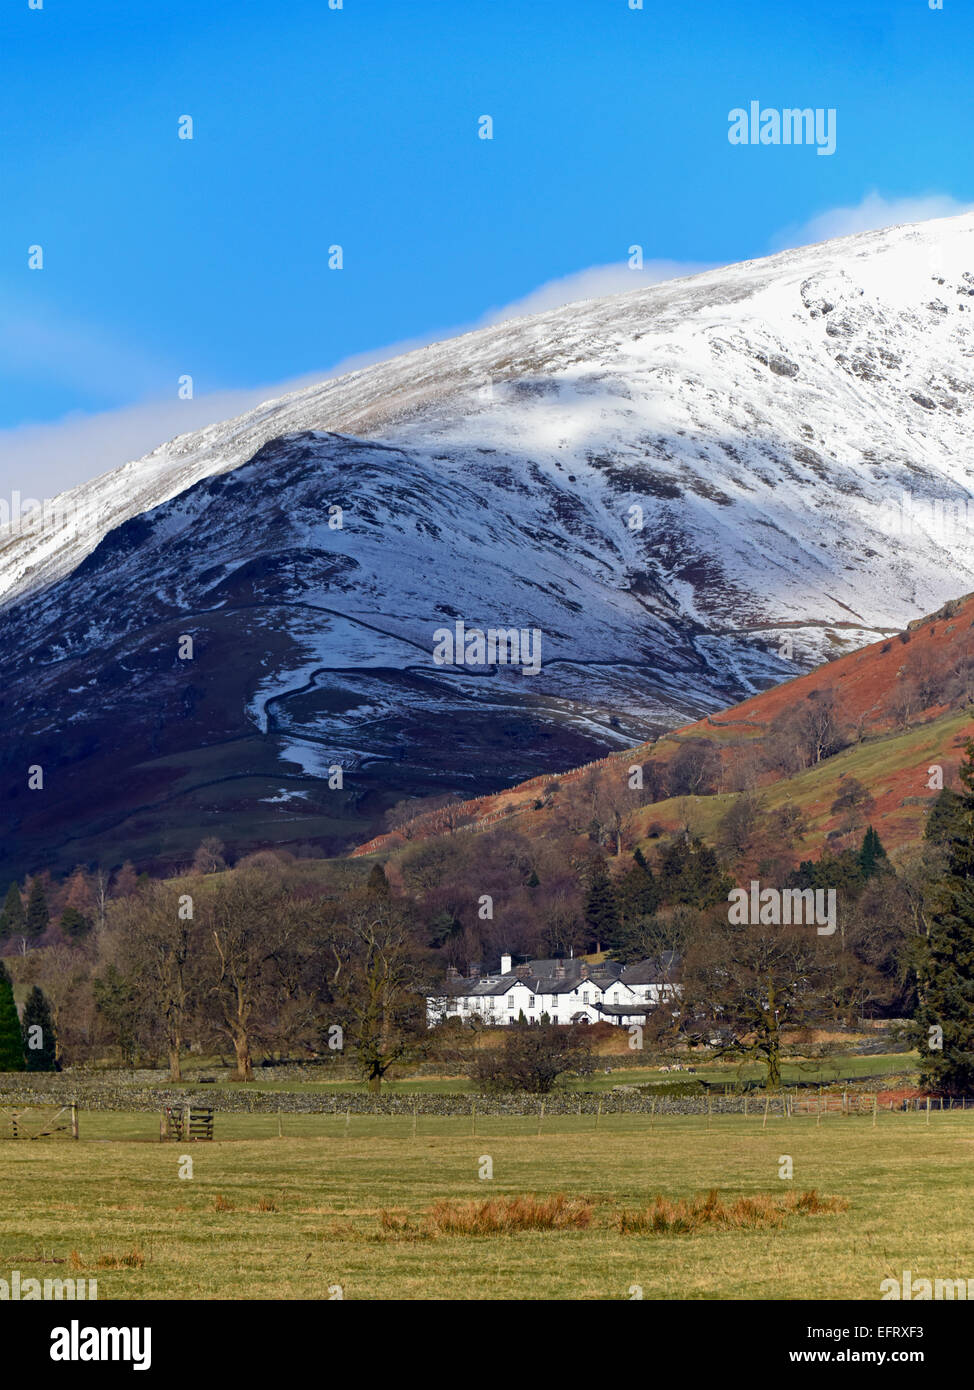 Seat Sandal and the Swan Hotel. Grasmere, Lake District National Park, Cumbria, England, United Kingdom, Europe. - Stock Image